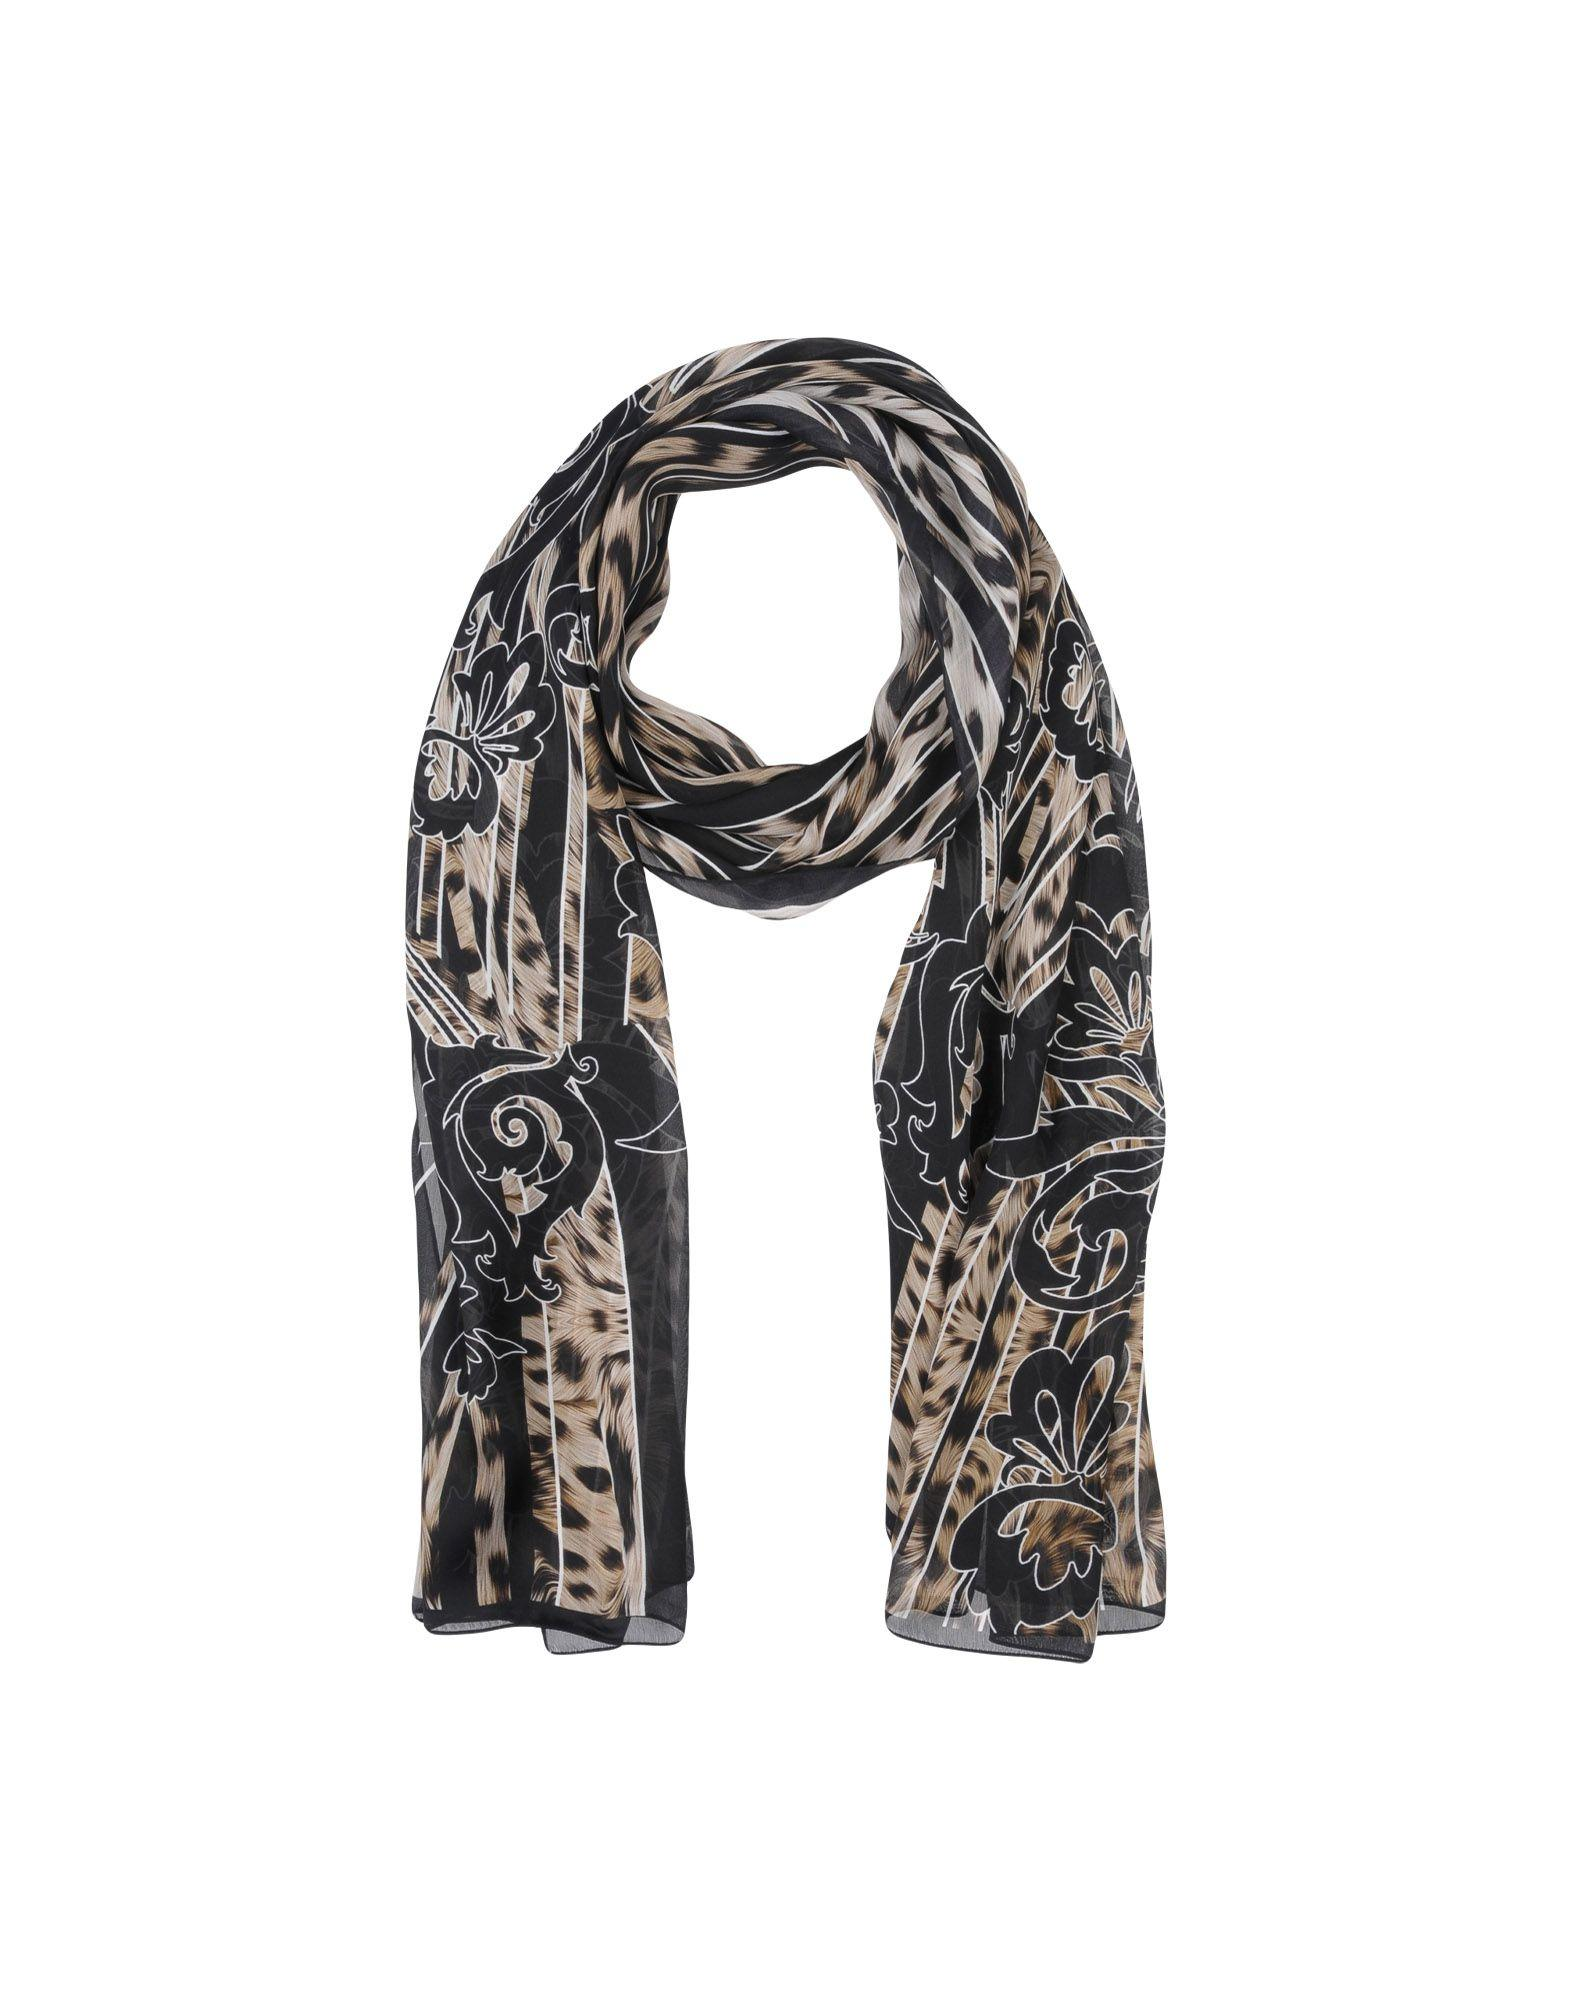 Roberto Cavalli Scarves In Black